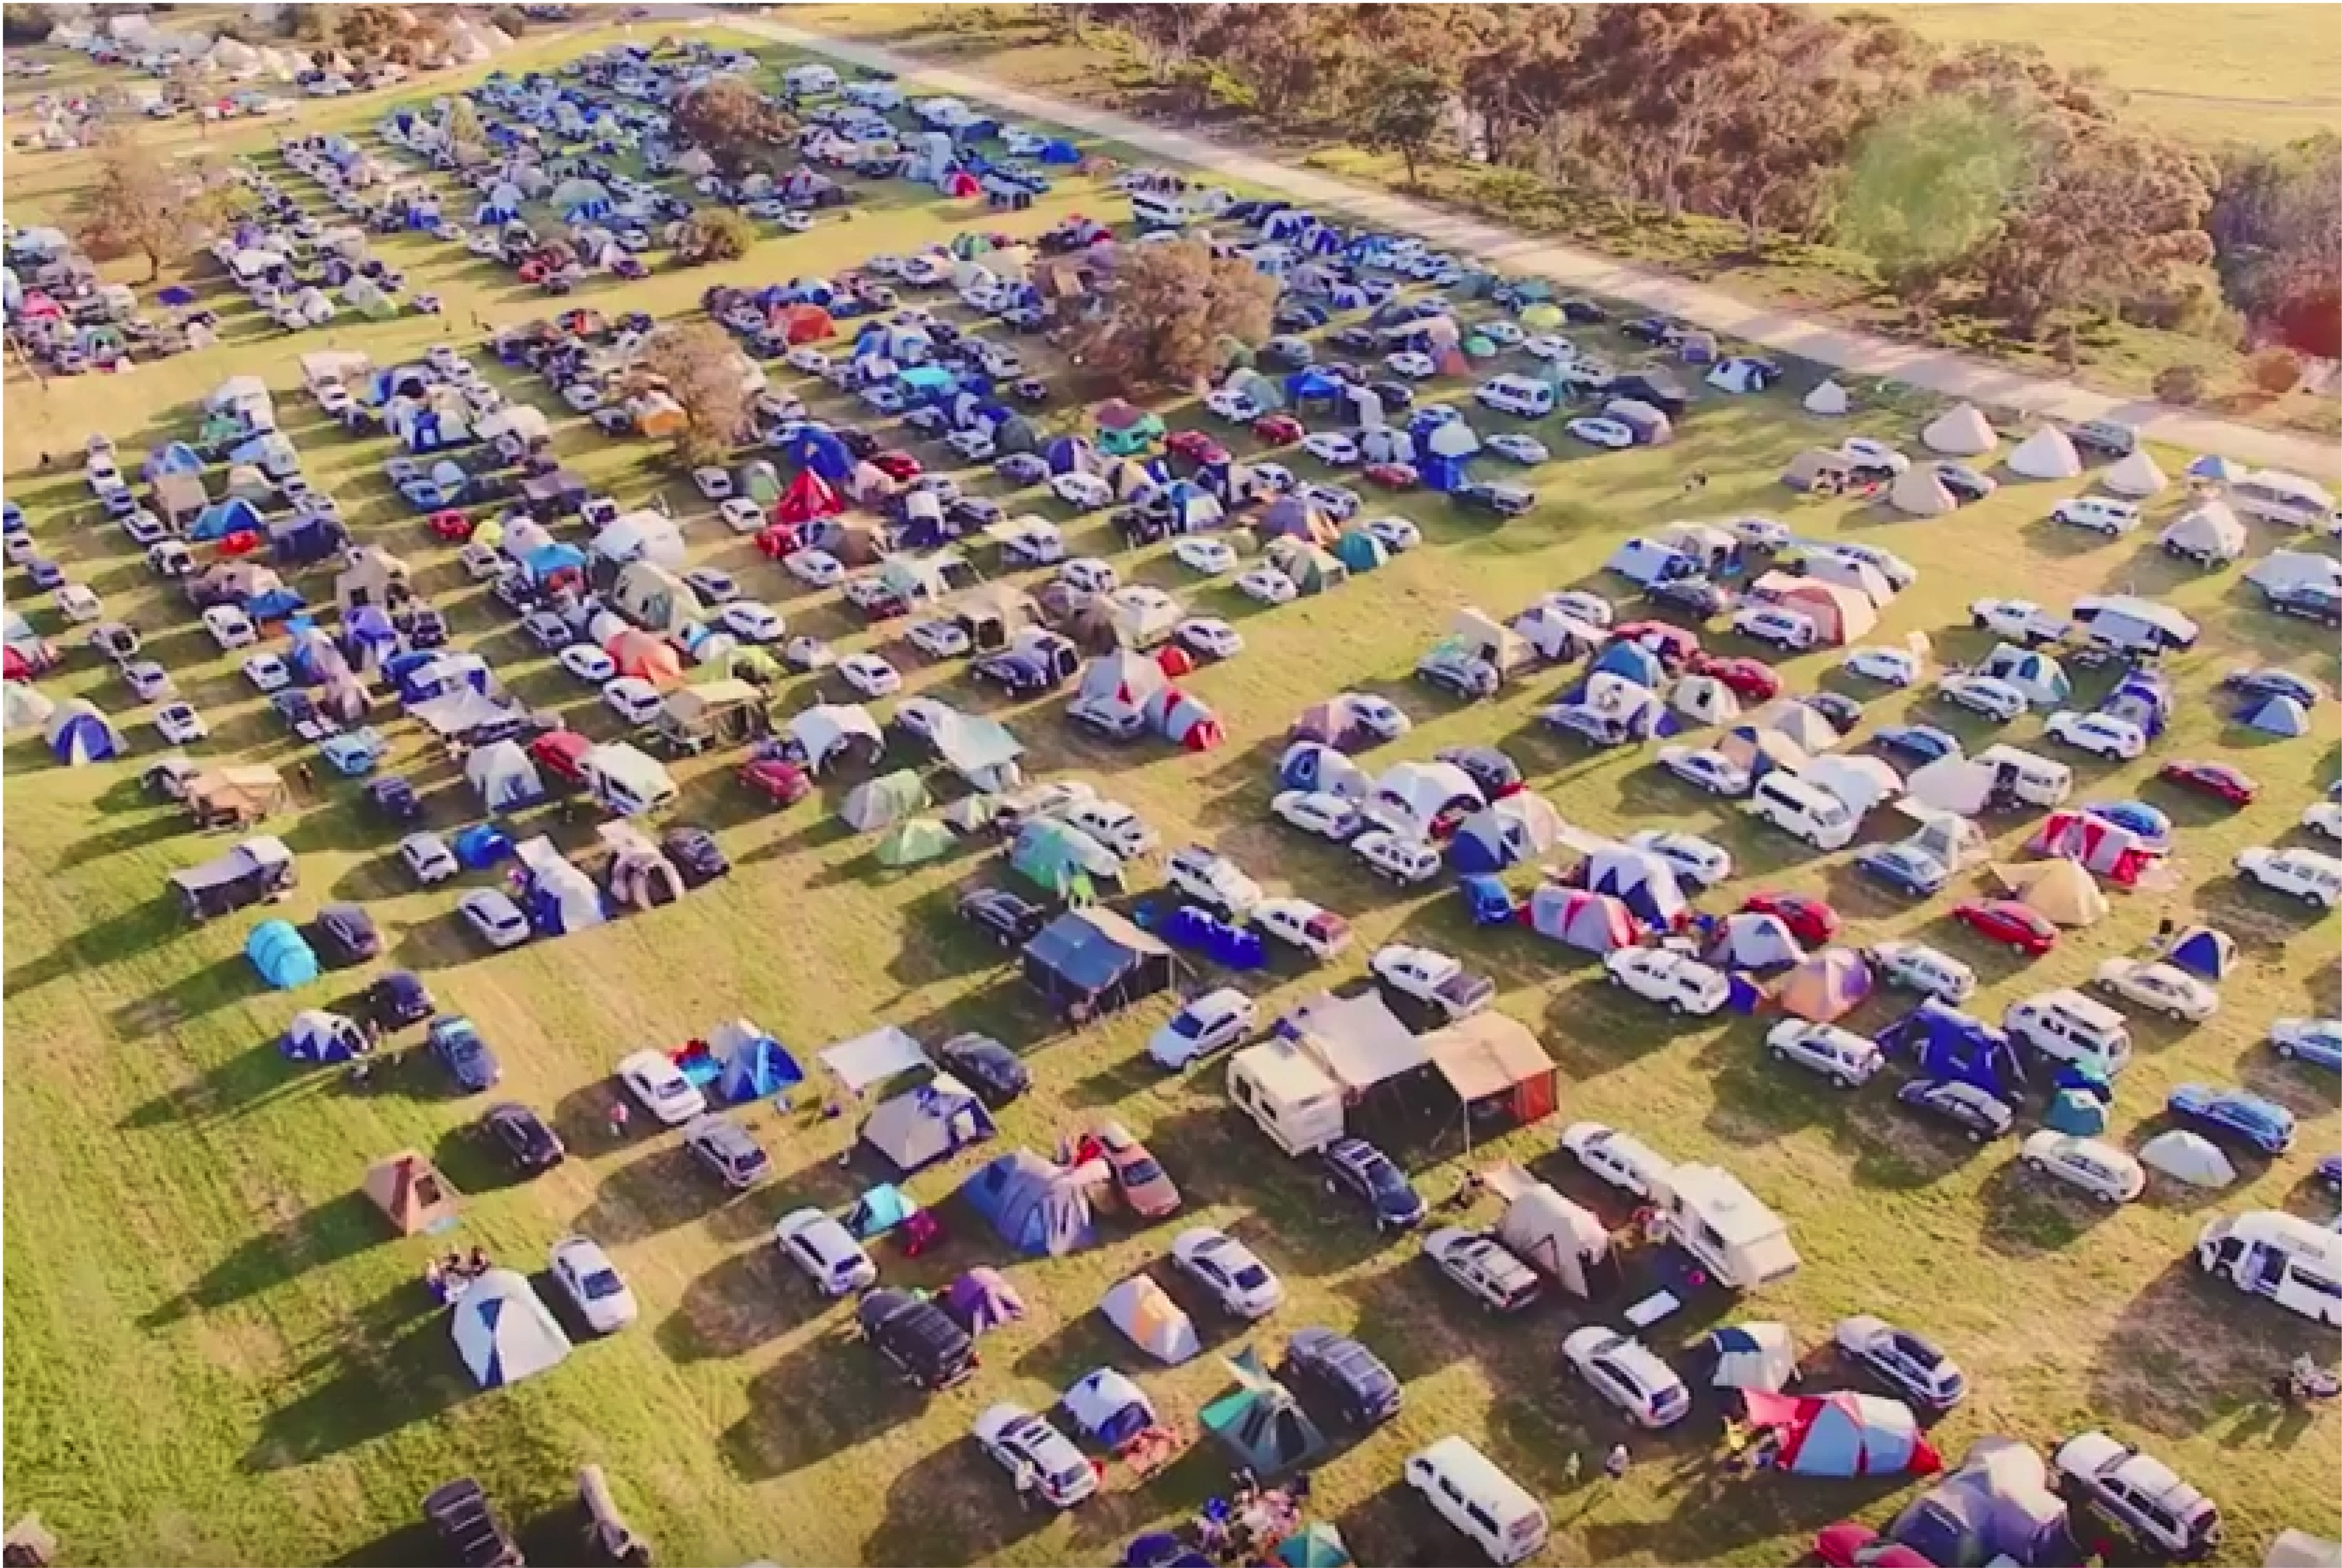 Aerial view of the campgrounds at The Lost Lands 2016